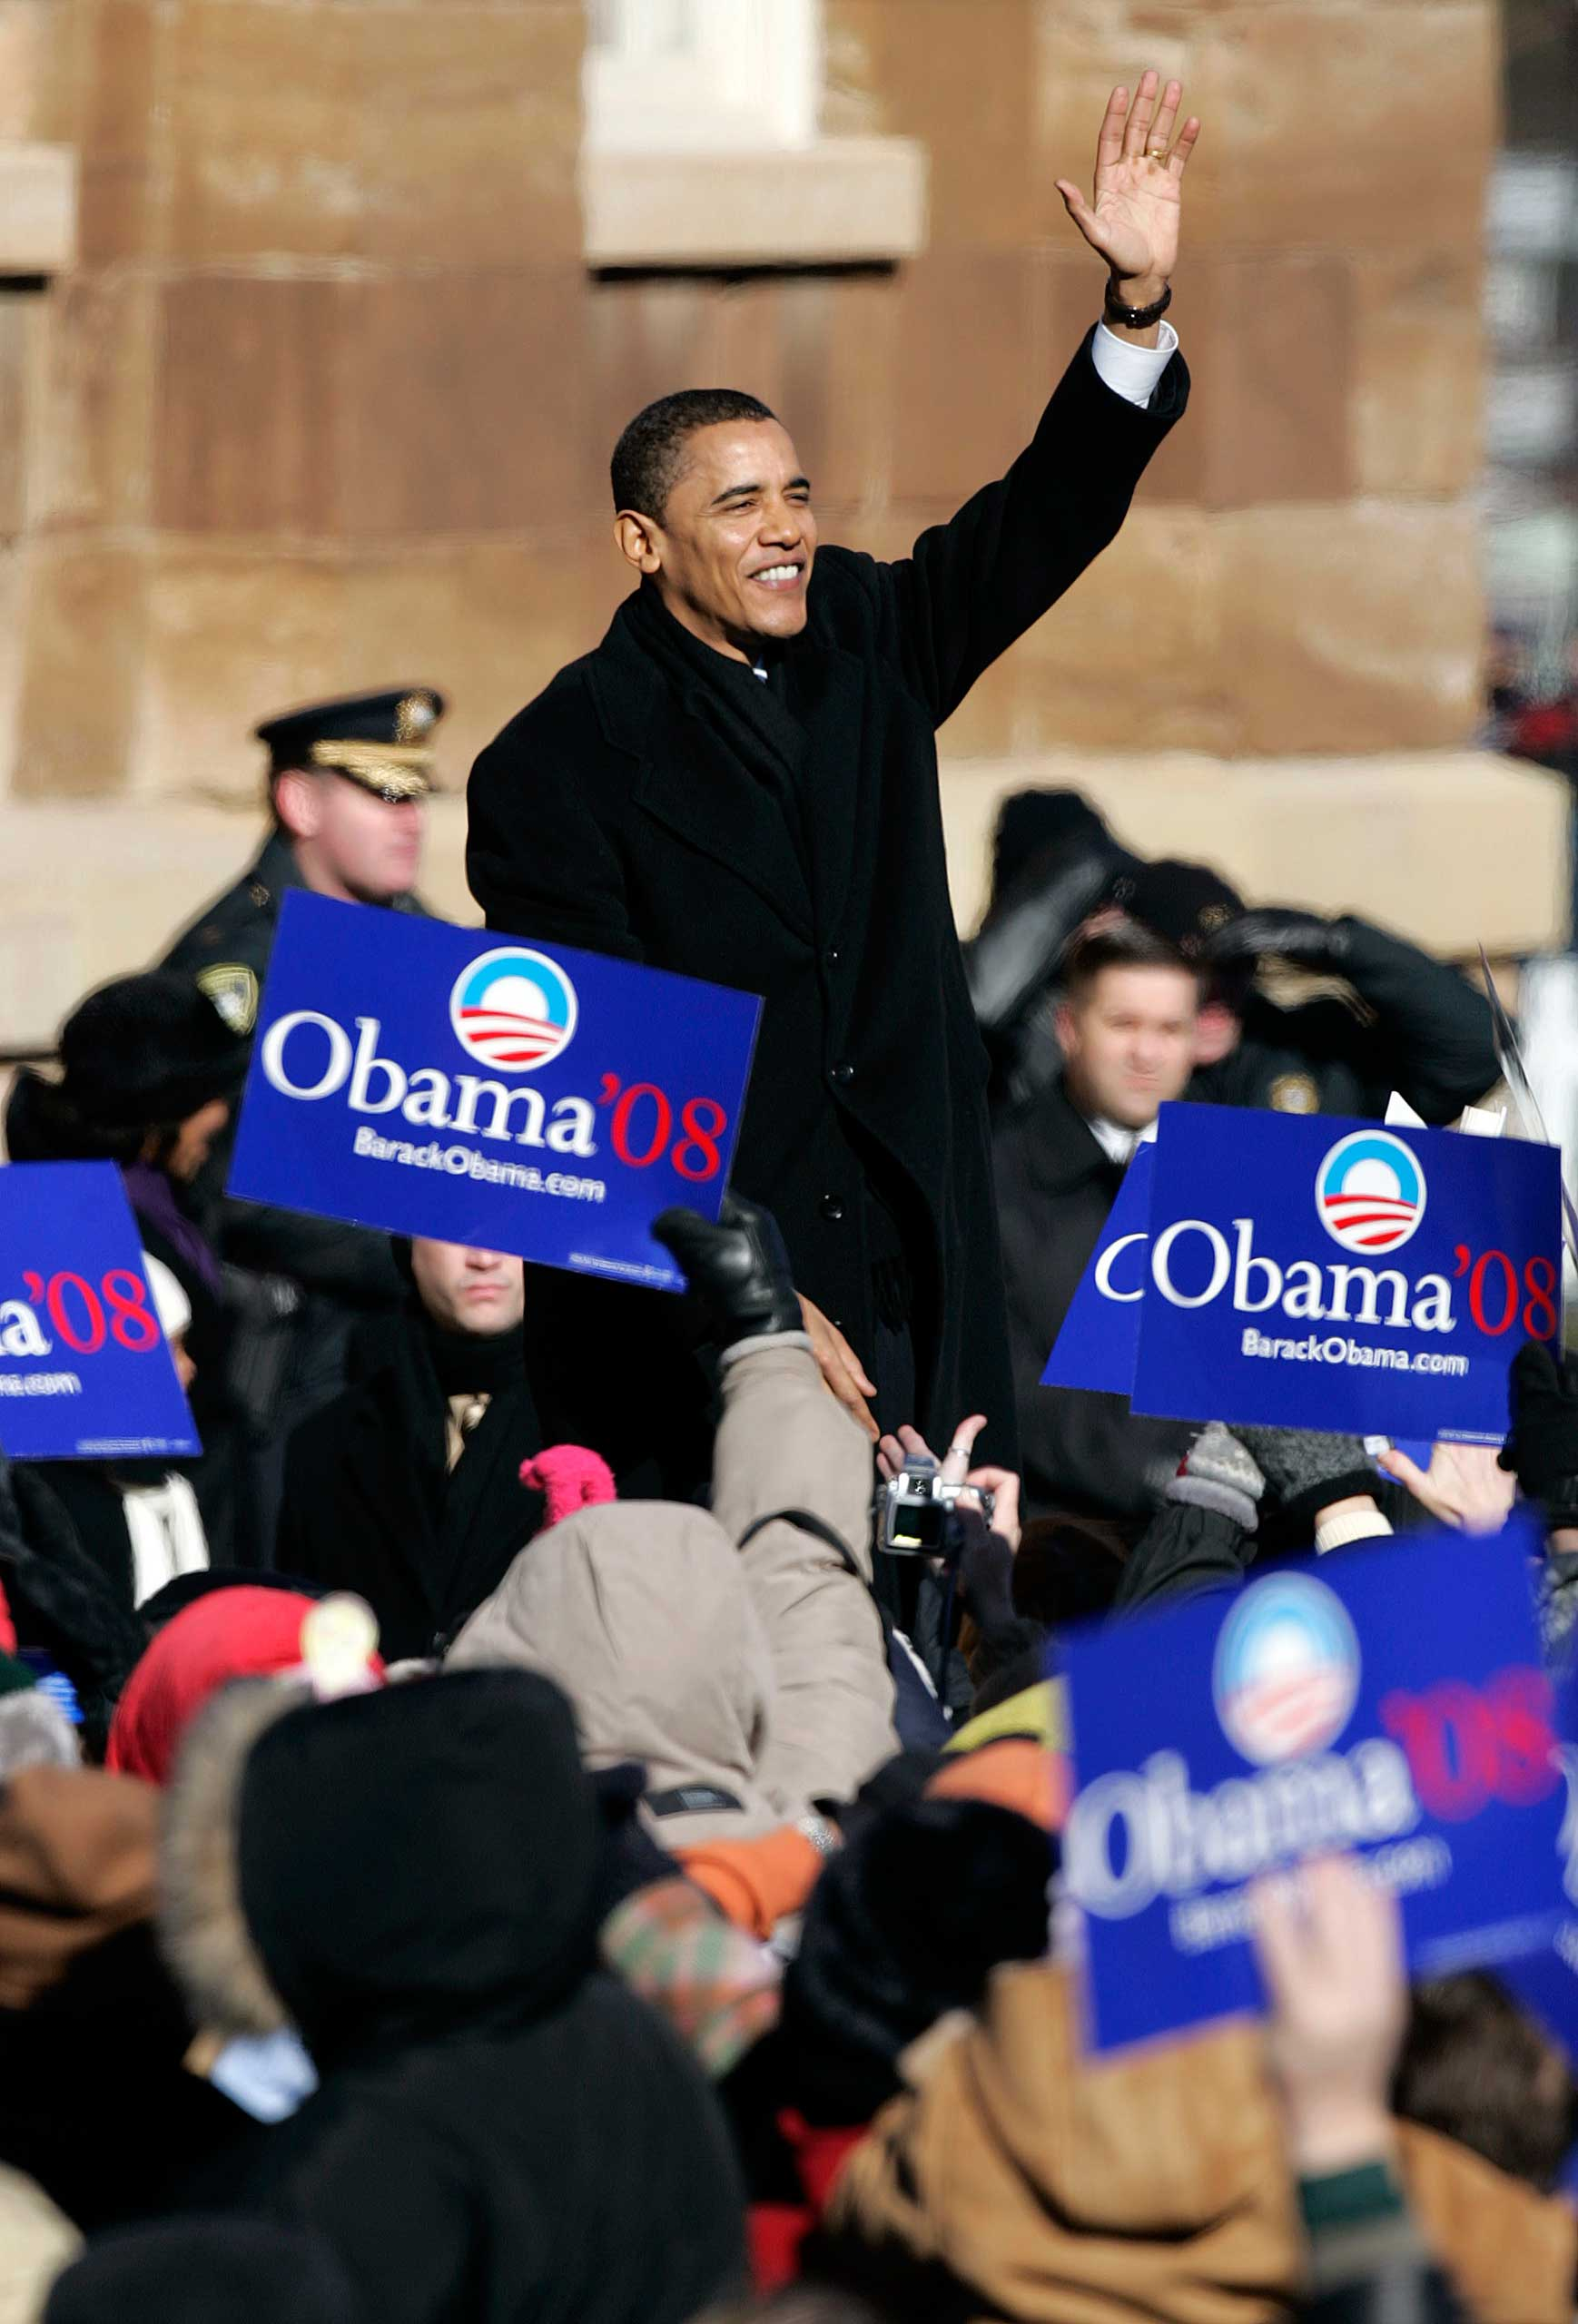 Barack Obama launched his campaign before the Old State Capitol in Springfield, Ill., on Feb. 10, 2007, with a speech that referenced Abraham Lincoln.